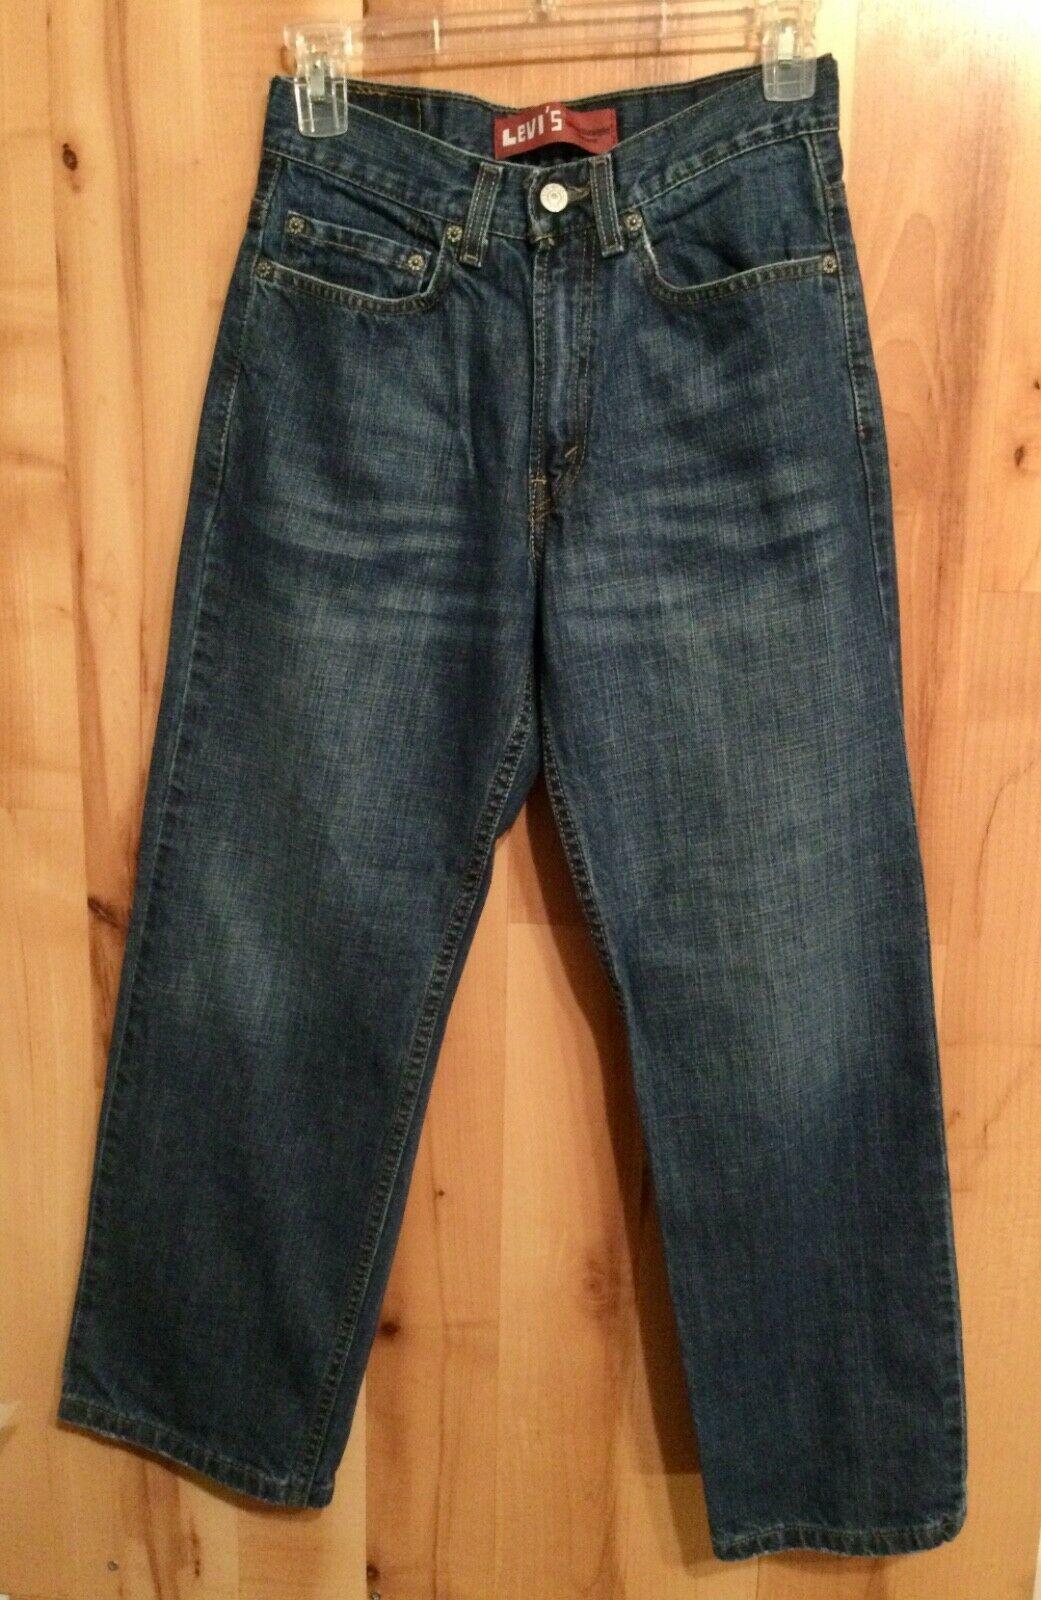 Primary image for Levi's Boys Size 12 Reg (26x26 1/2) Loose Straight 569 Jeans